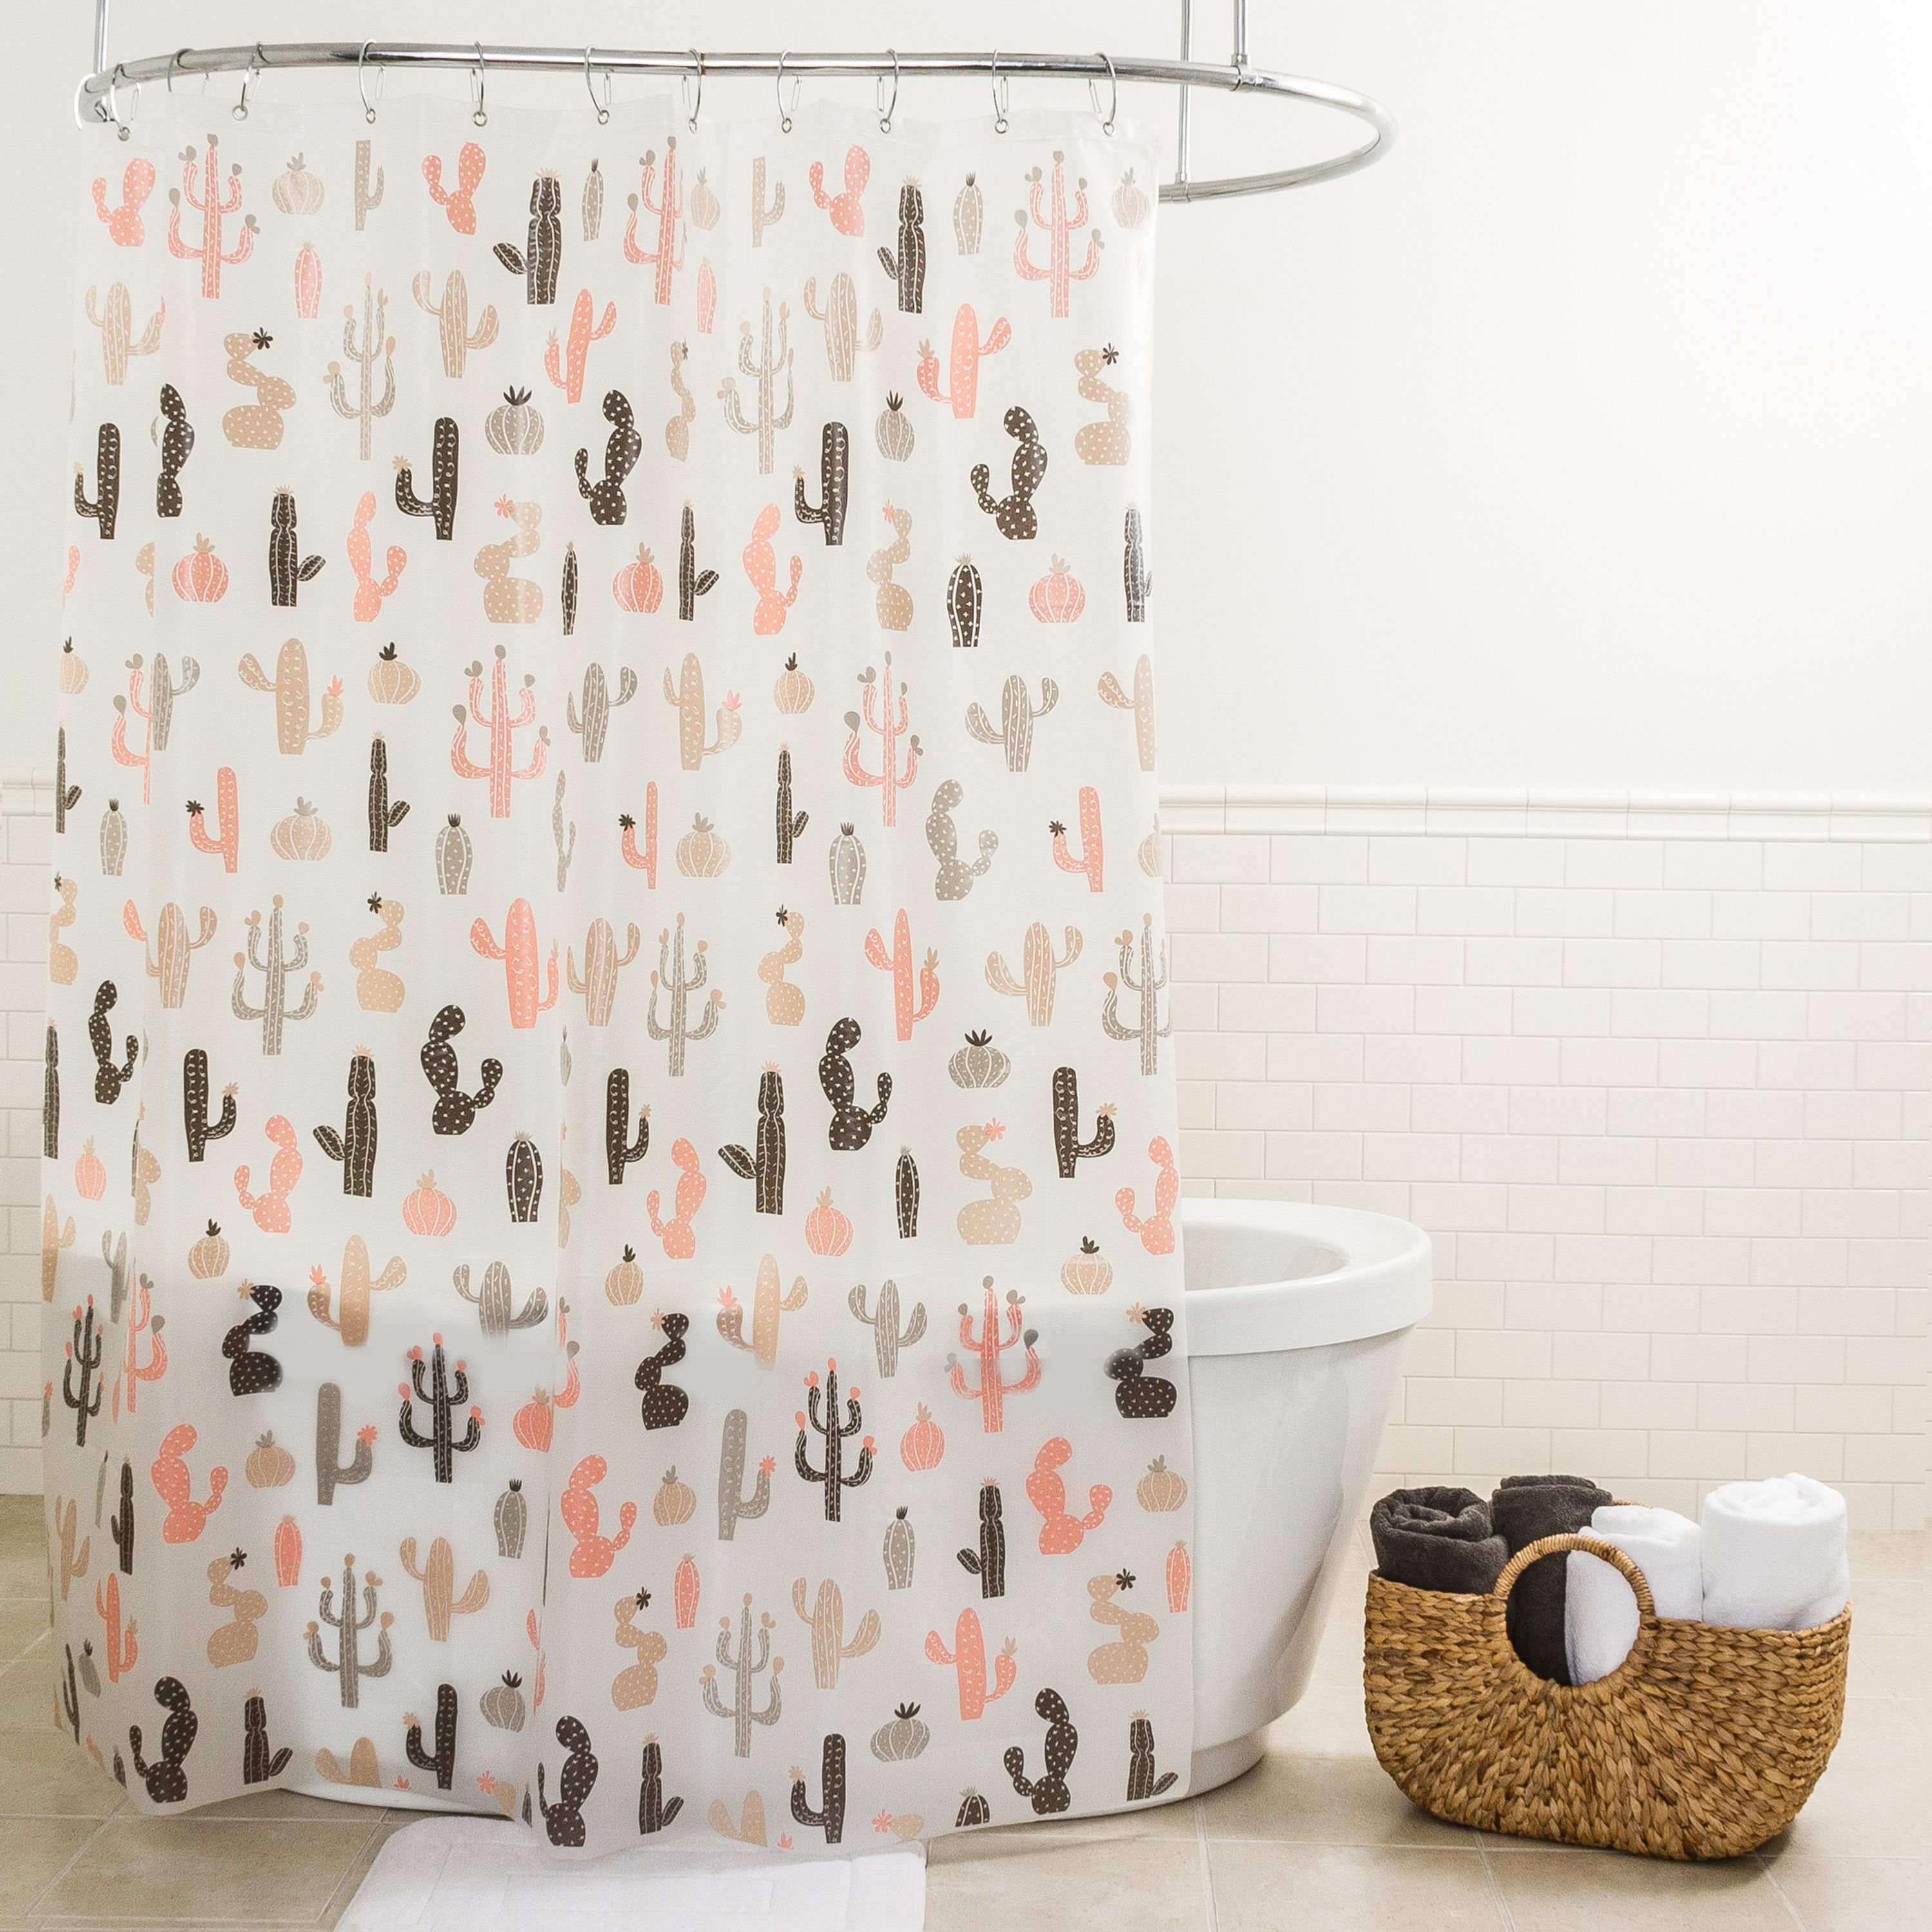 SPLASH BATH SHOWER CURTAIN PEVA VINYL - MOJAVE CACTUS - 70 x 72 NIP NEW